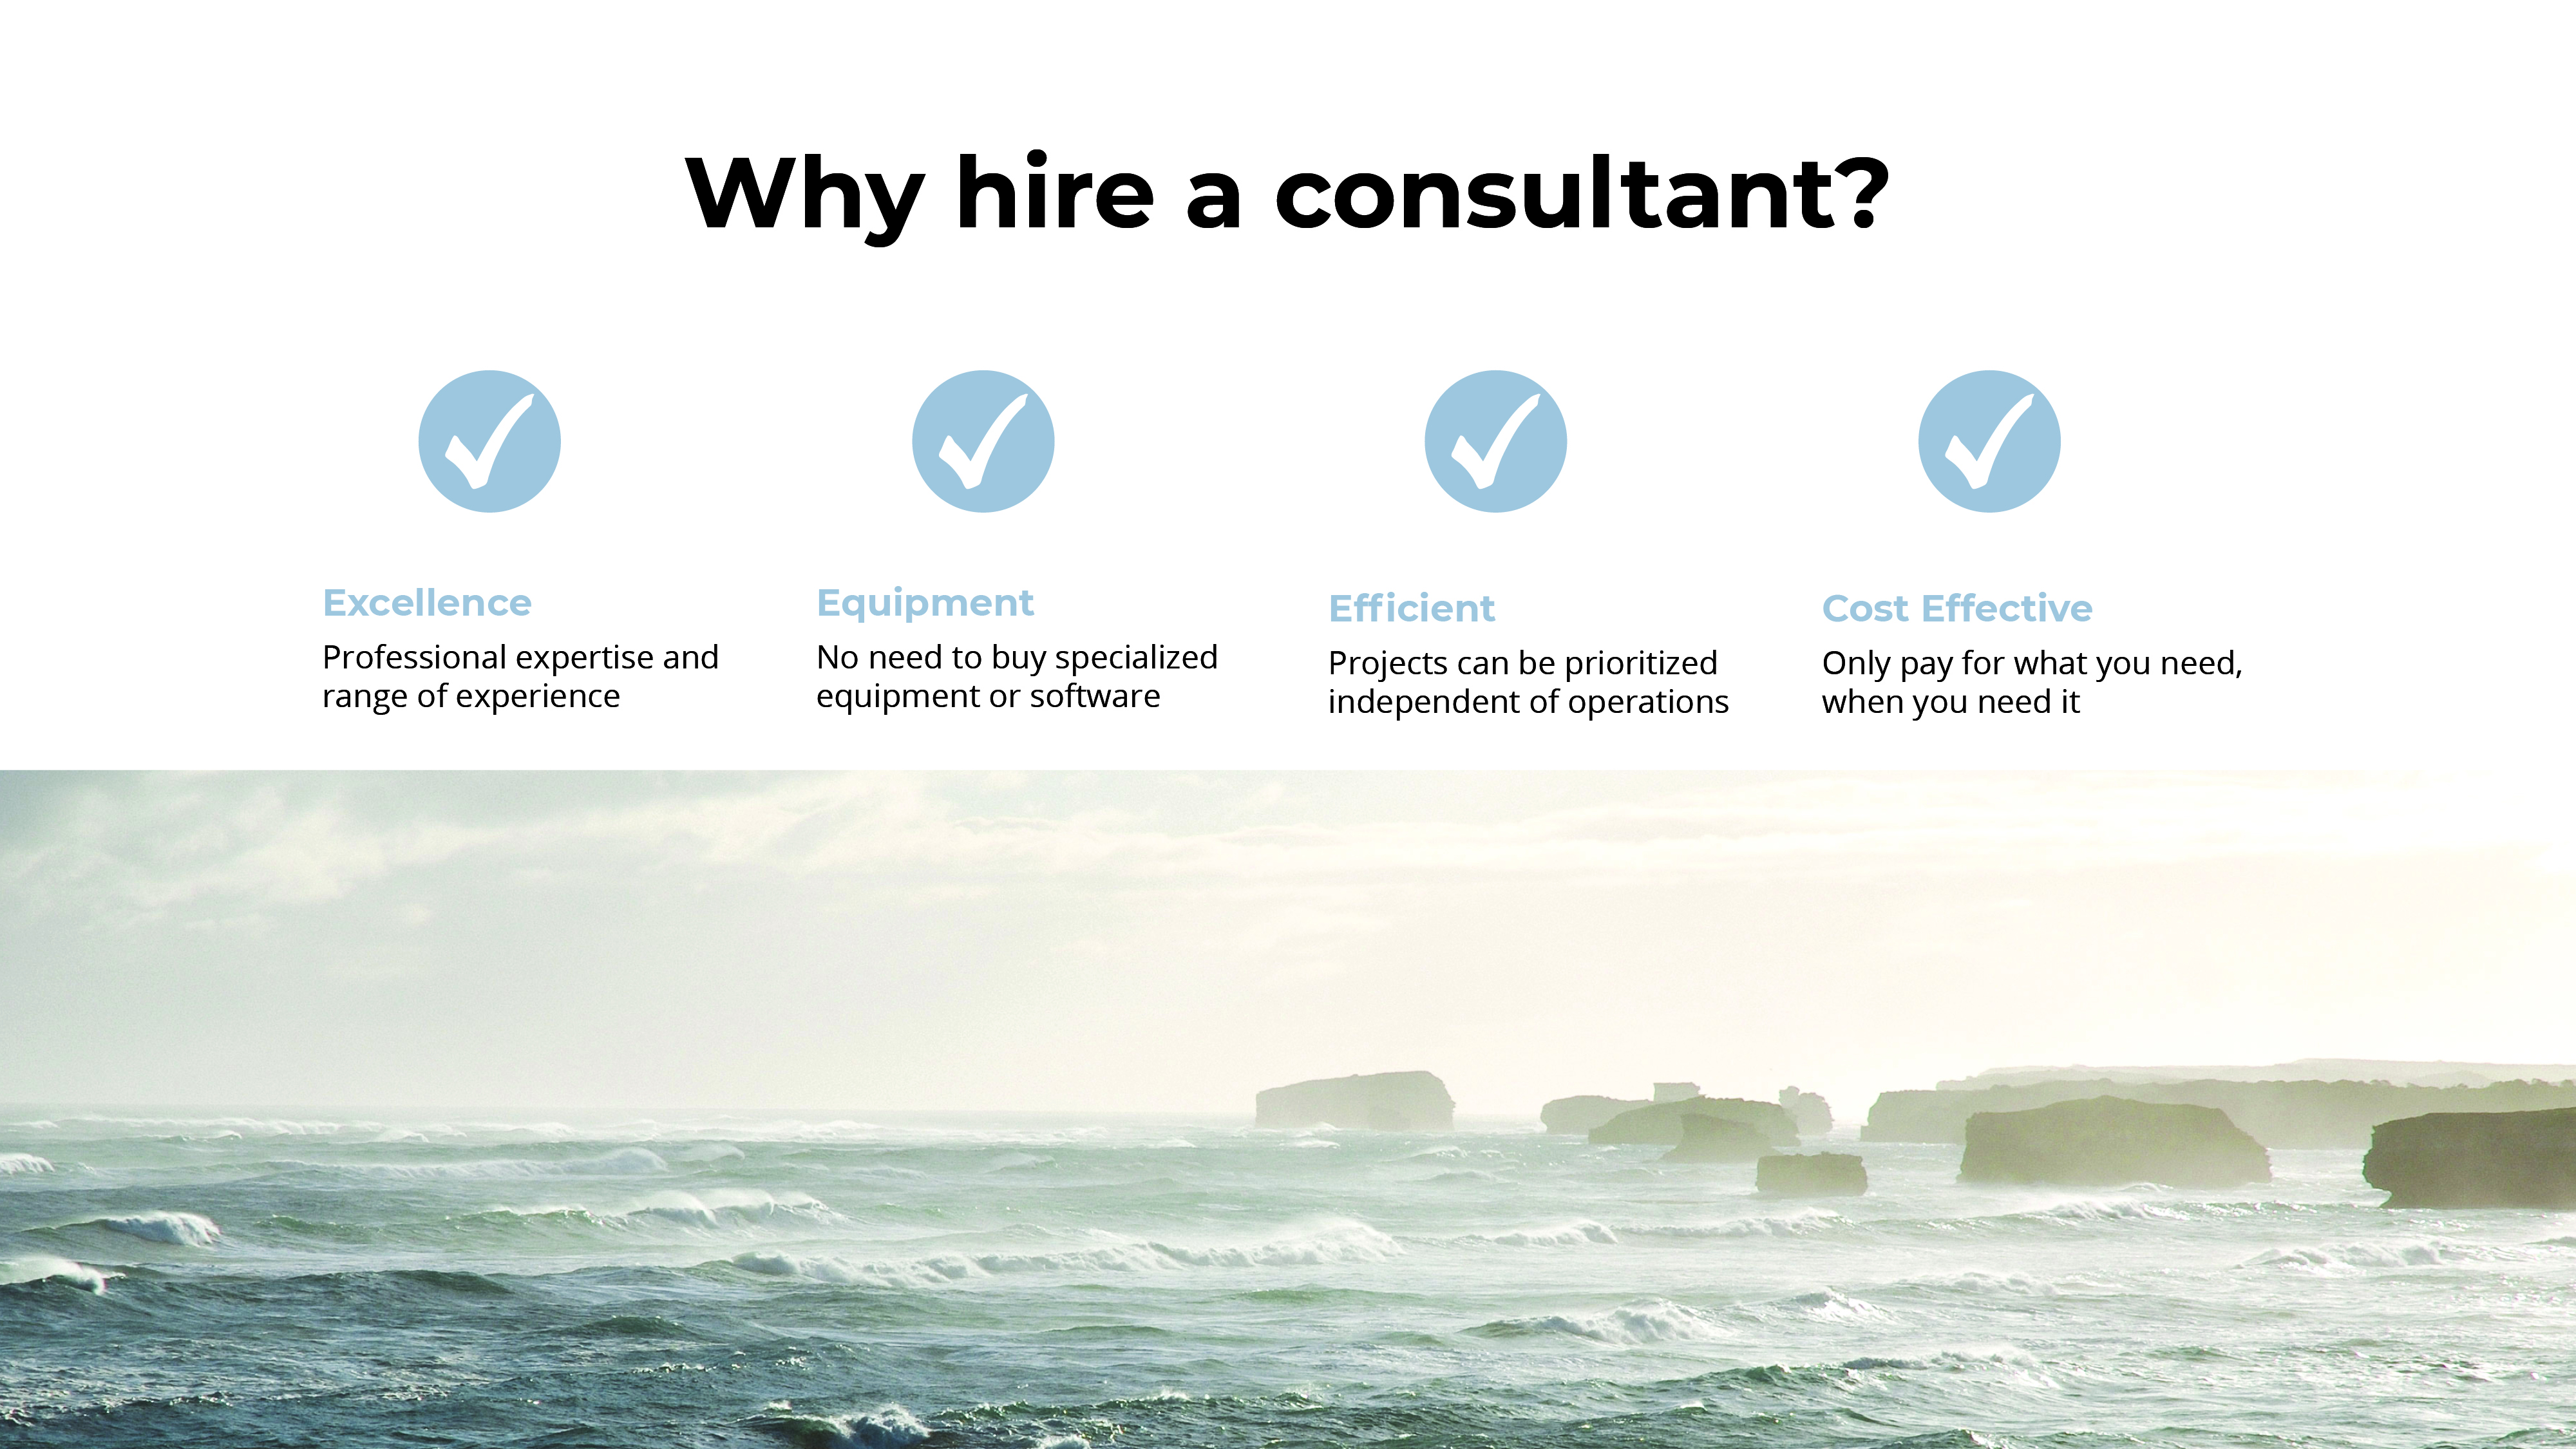 Why hire a consultant?